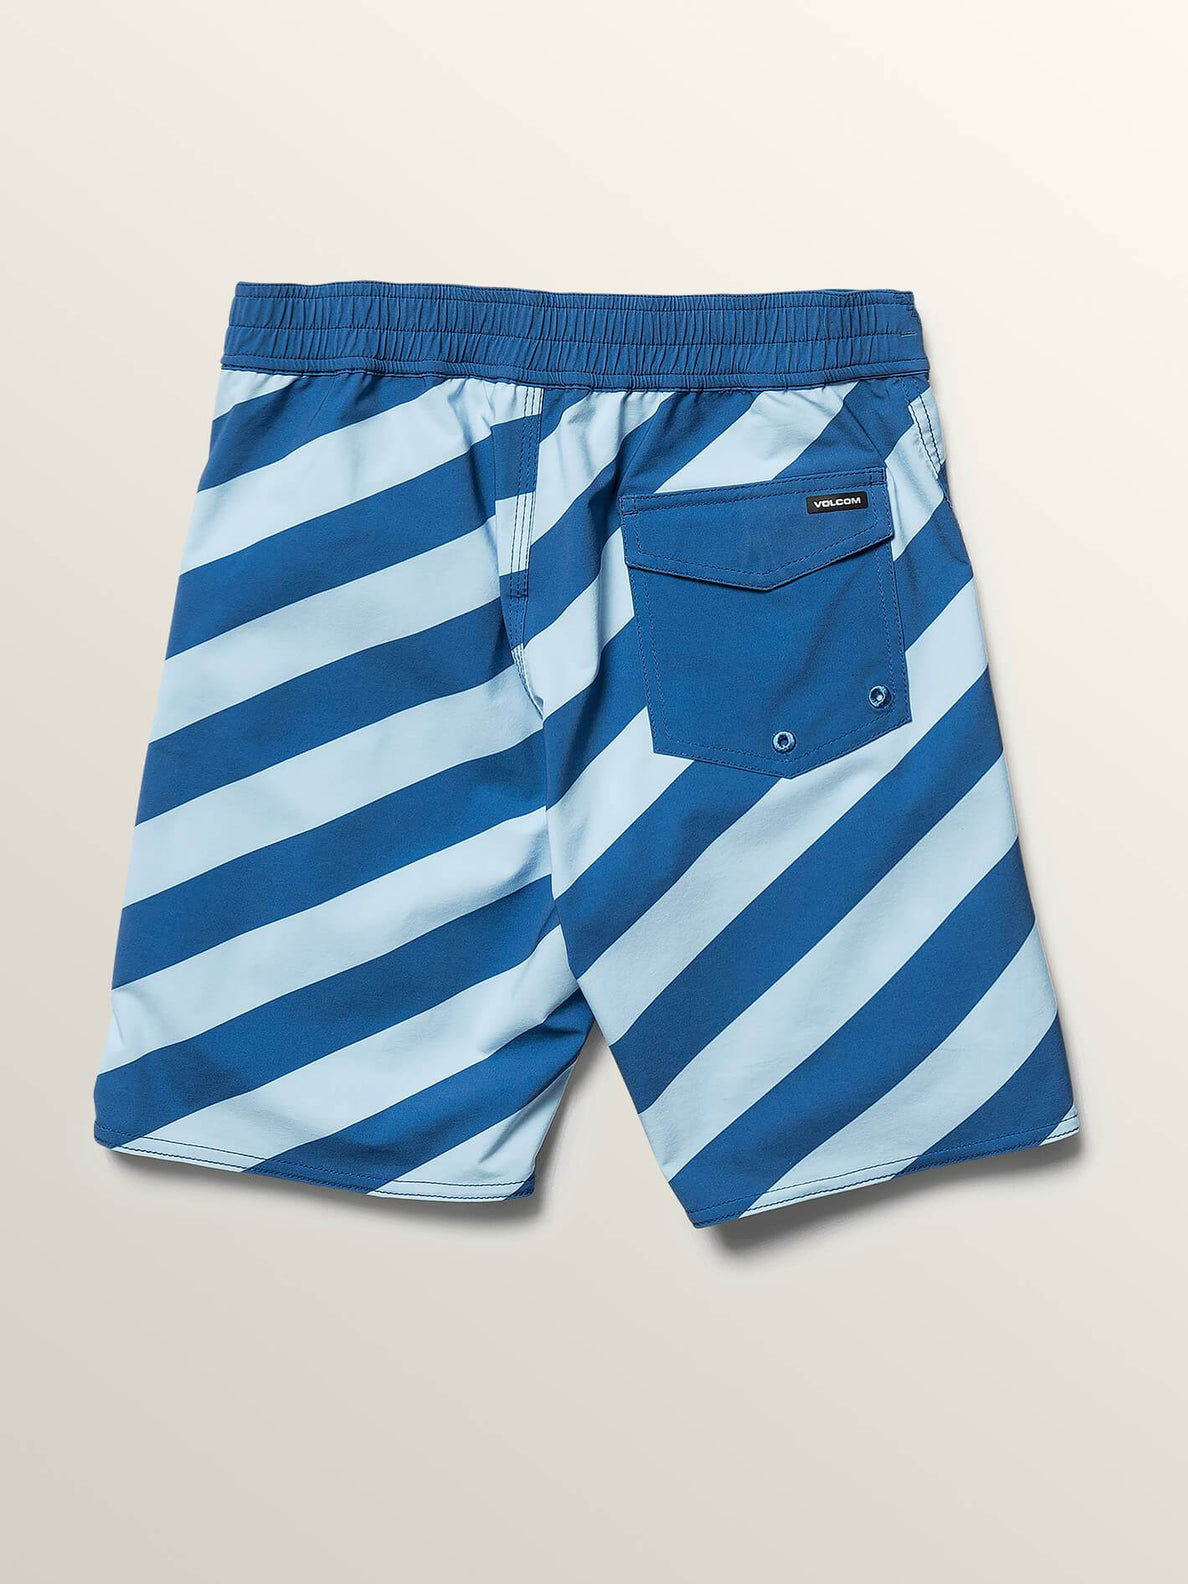 Big Boys Stripey Elastic Boardshorts In Arctic Blue, Back View